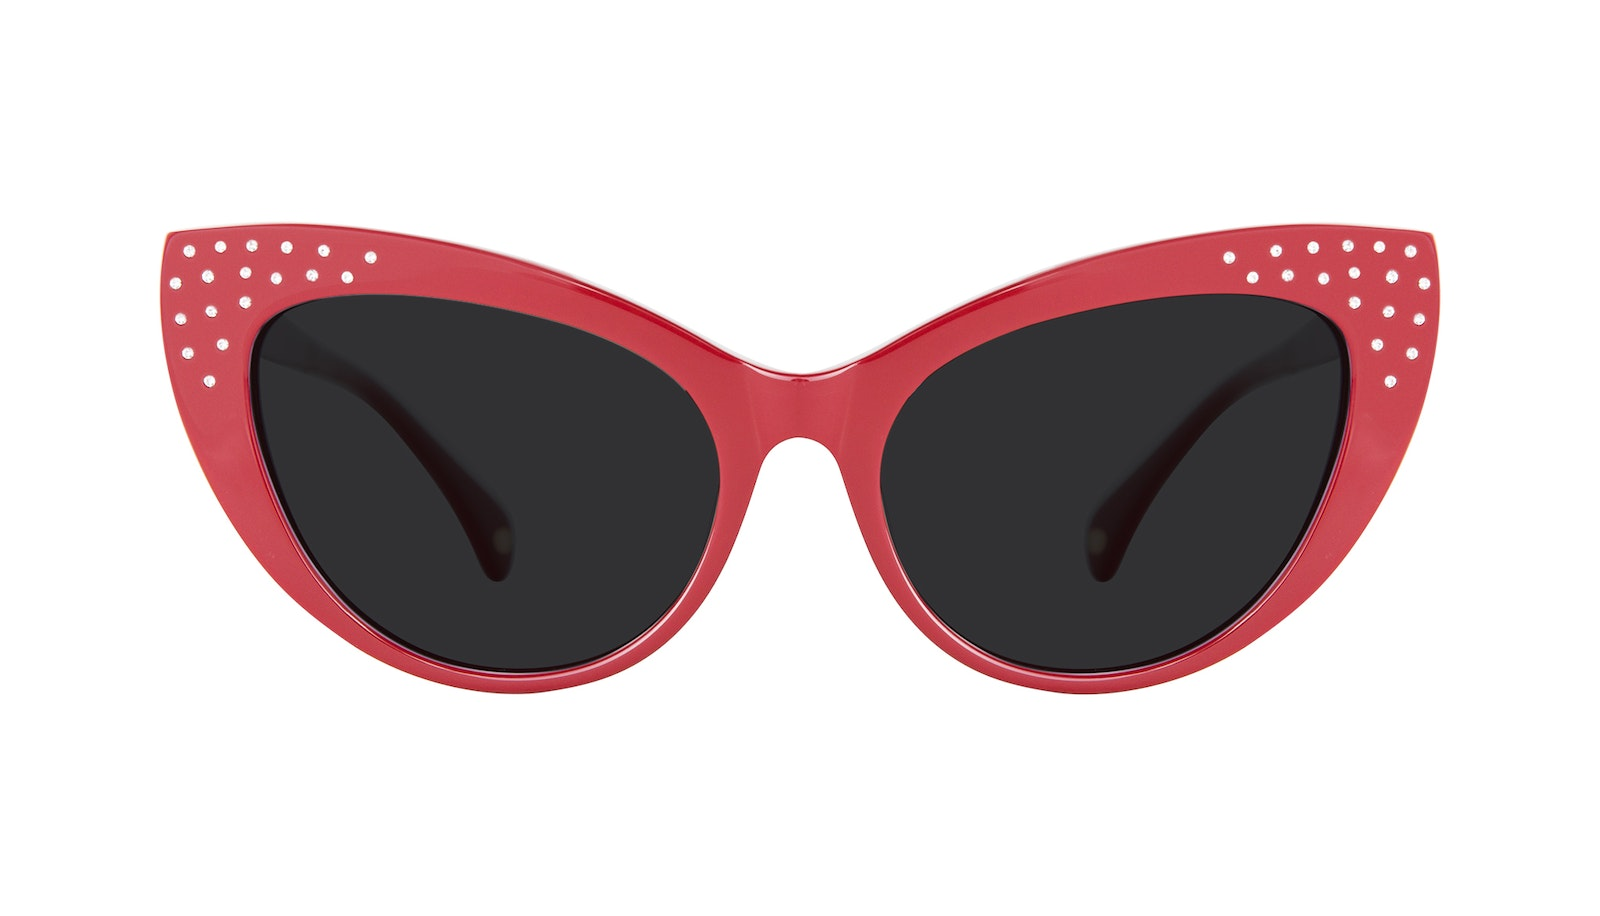 Affordable Fashion Glasses Cat Eye Daring Cateye Sunglasses Women Keiko Amanda Red